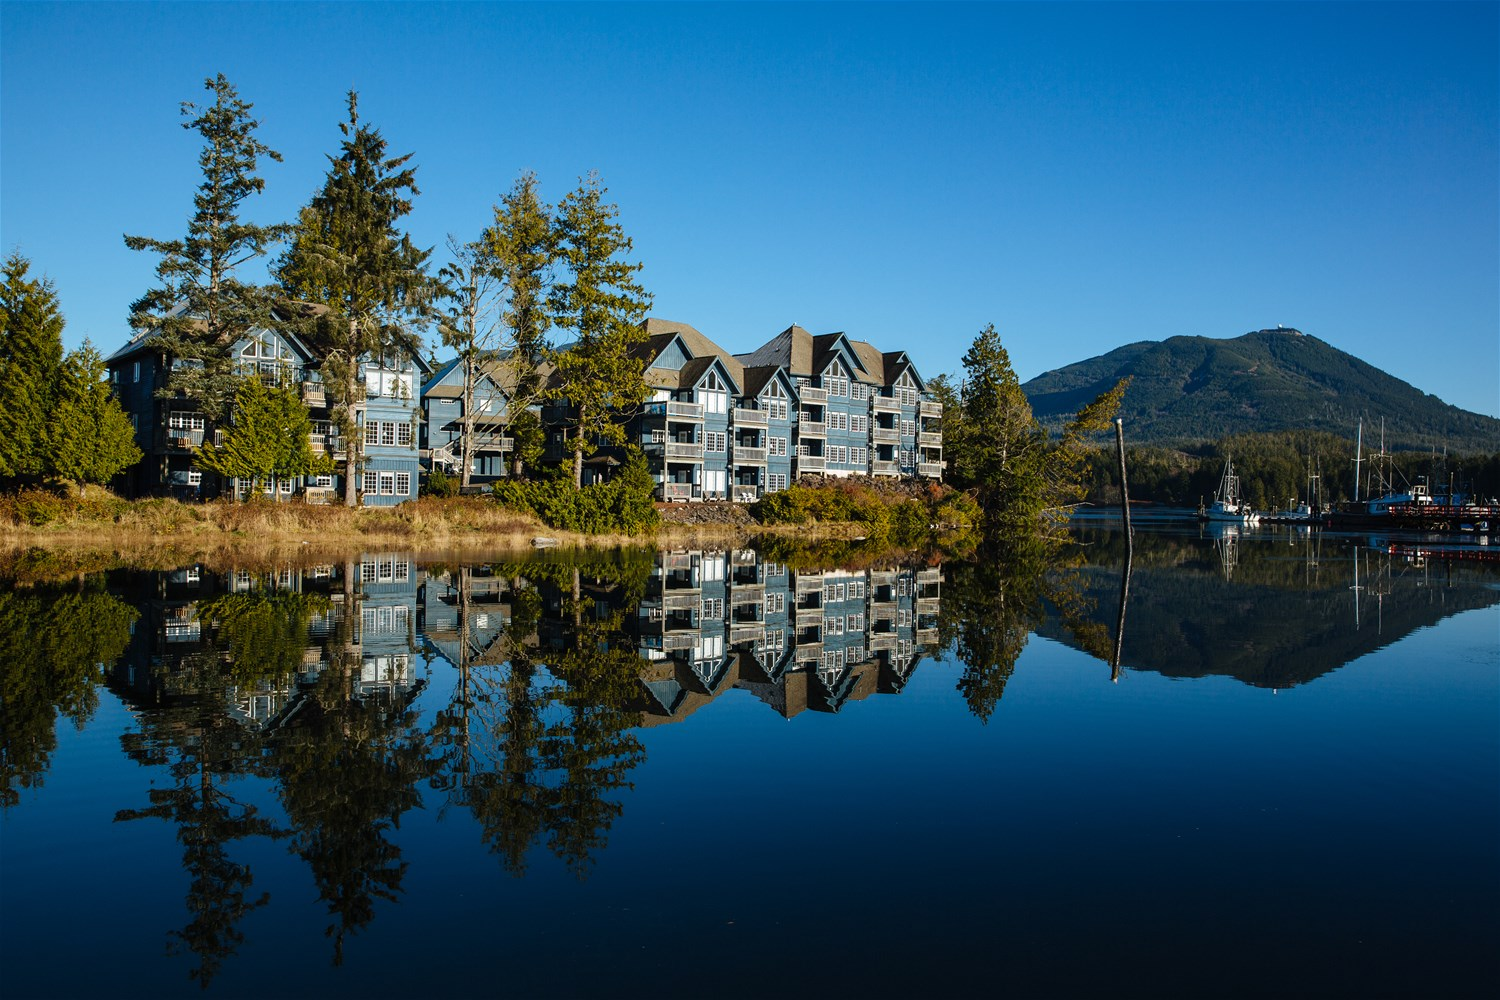 Lounge Suite Sunshine Coast Water 39s Edge Shoreside Suites Vancouver Island And The